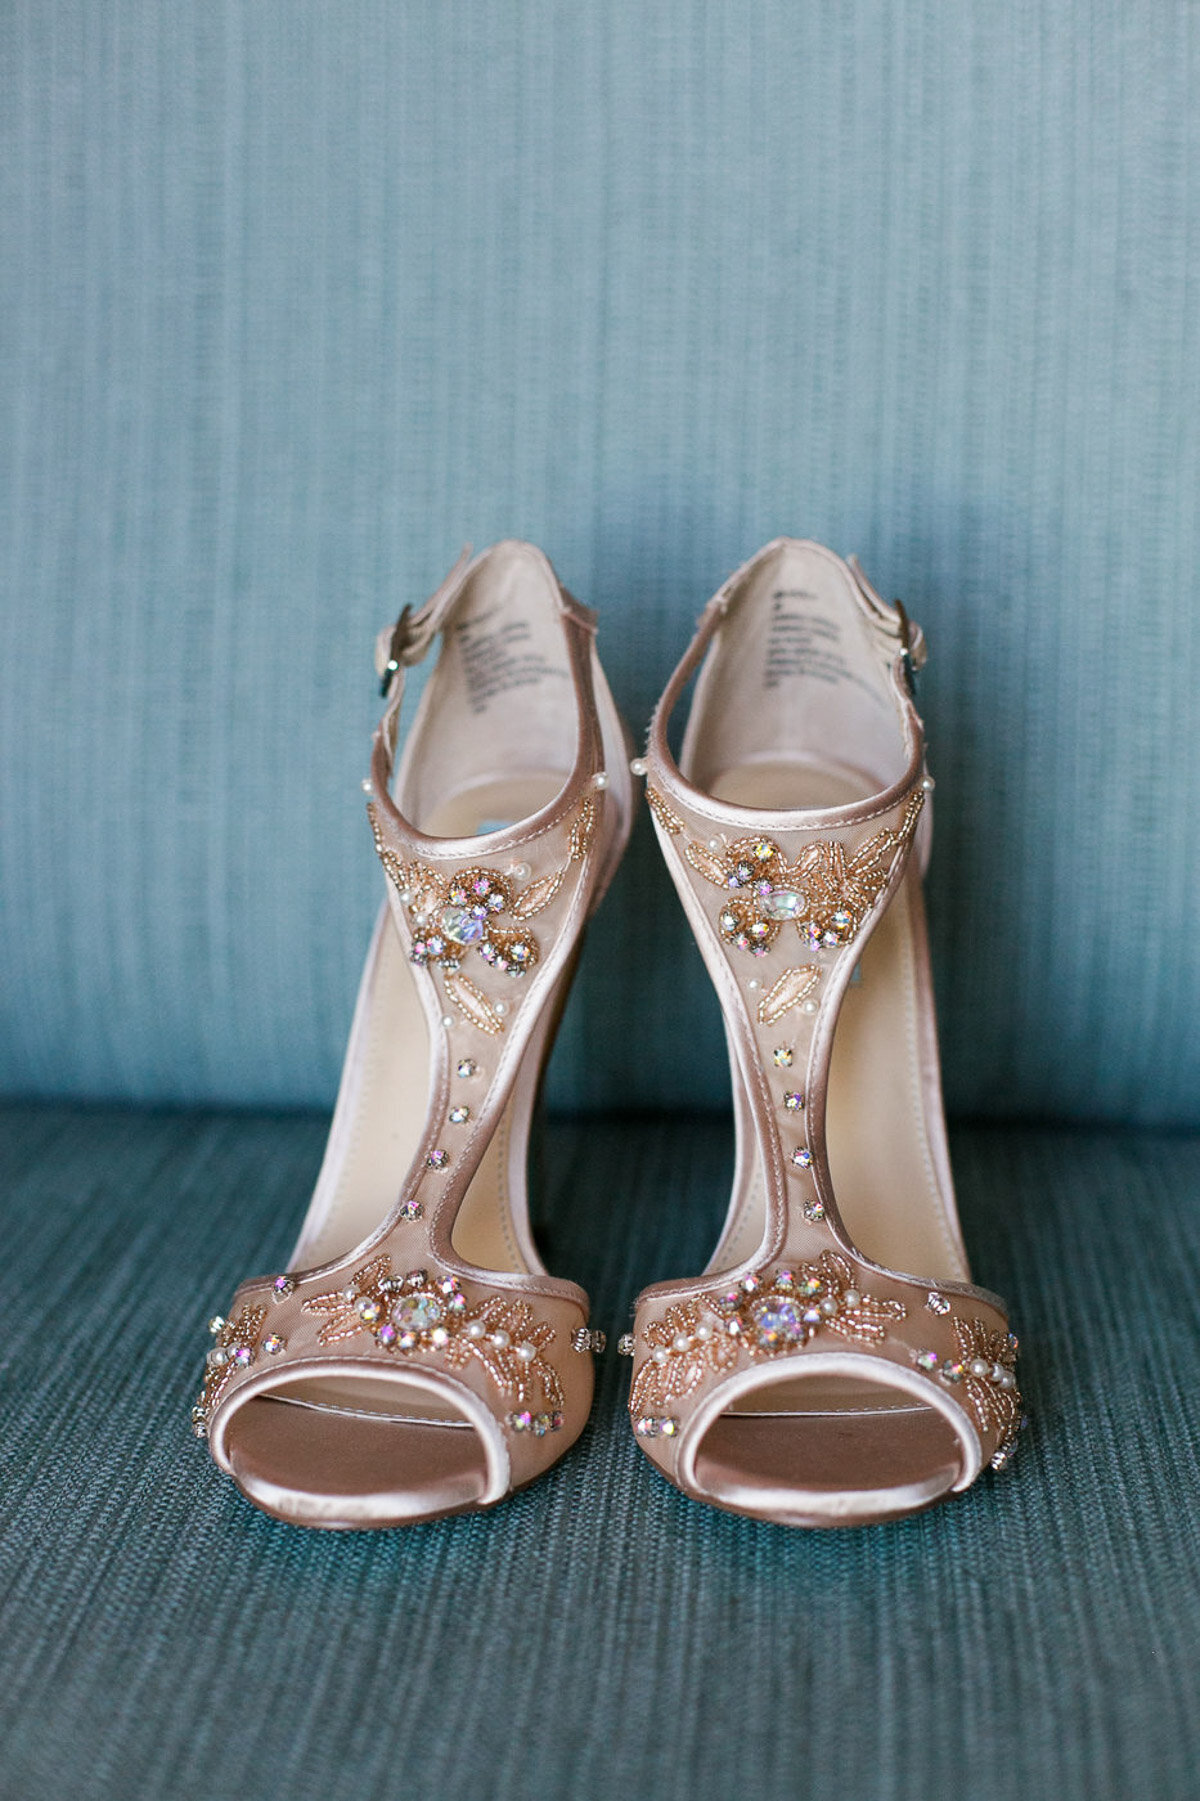 pink weddings shoes on blue sofa